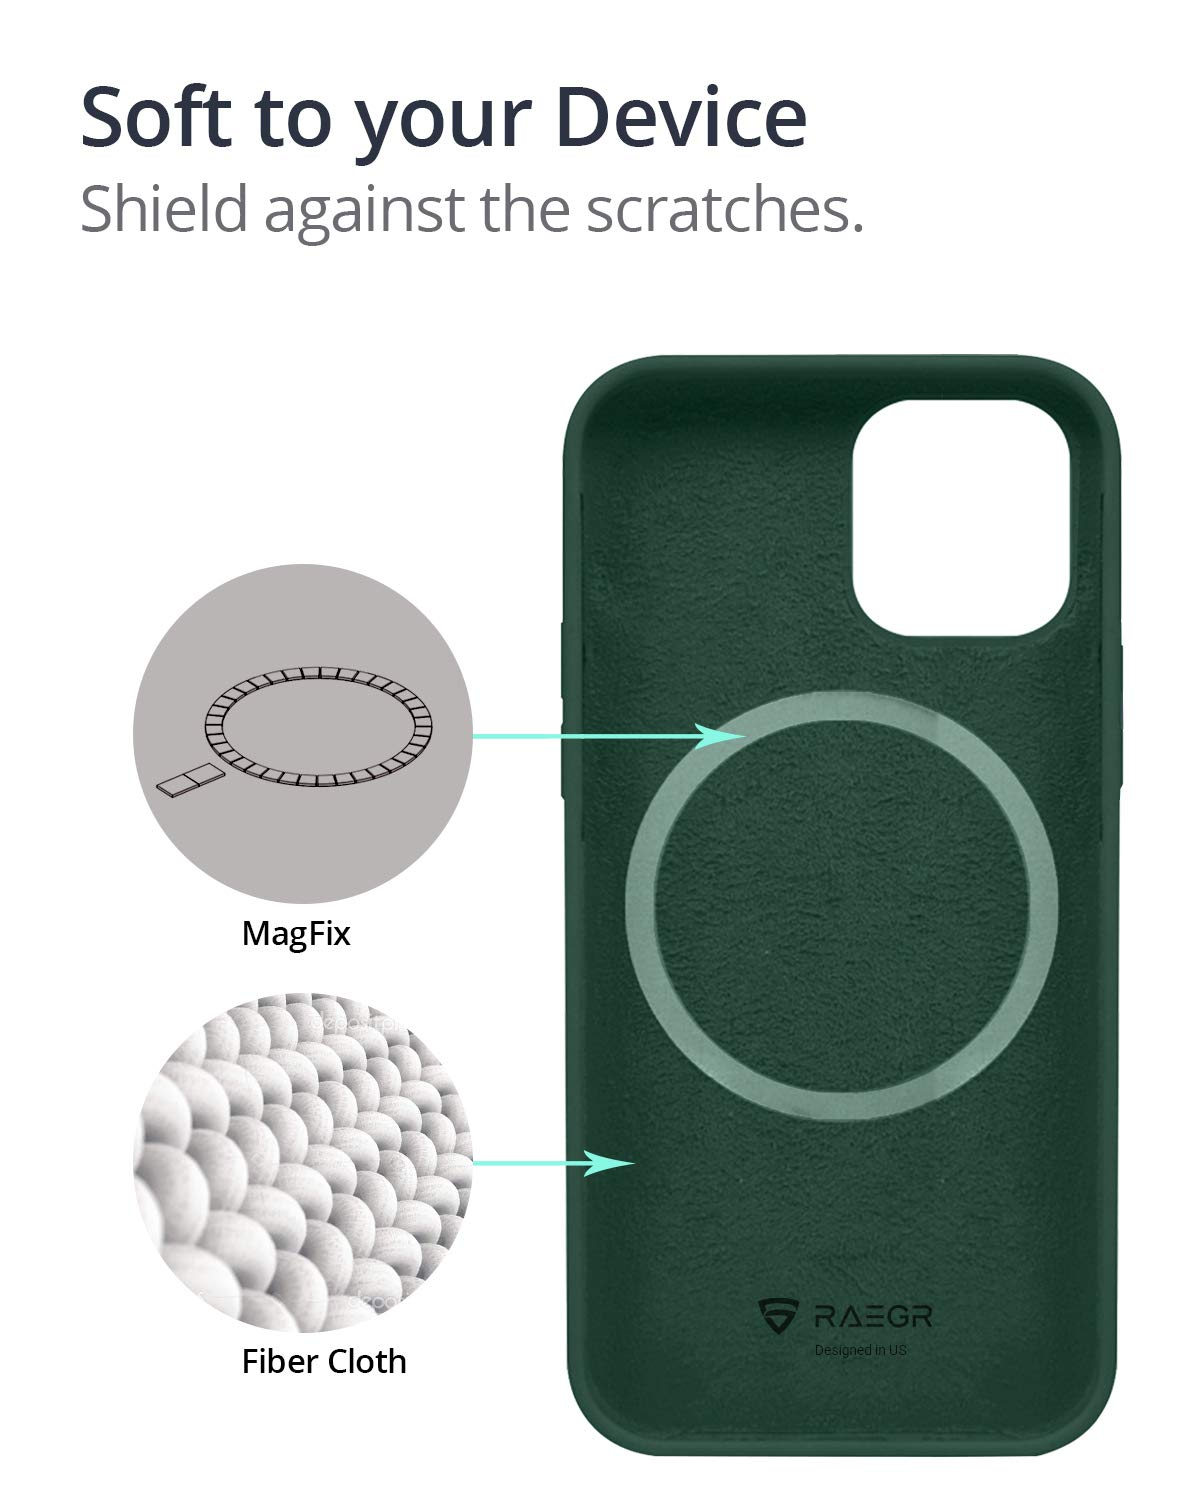 RAEGR iPhone 12 / iPhone 12 Pro 5G MagFix Magnetic Case, Supports Mag-Safe Wireless Charging 6.1